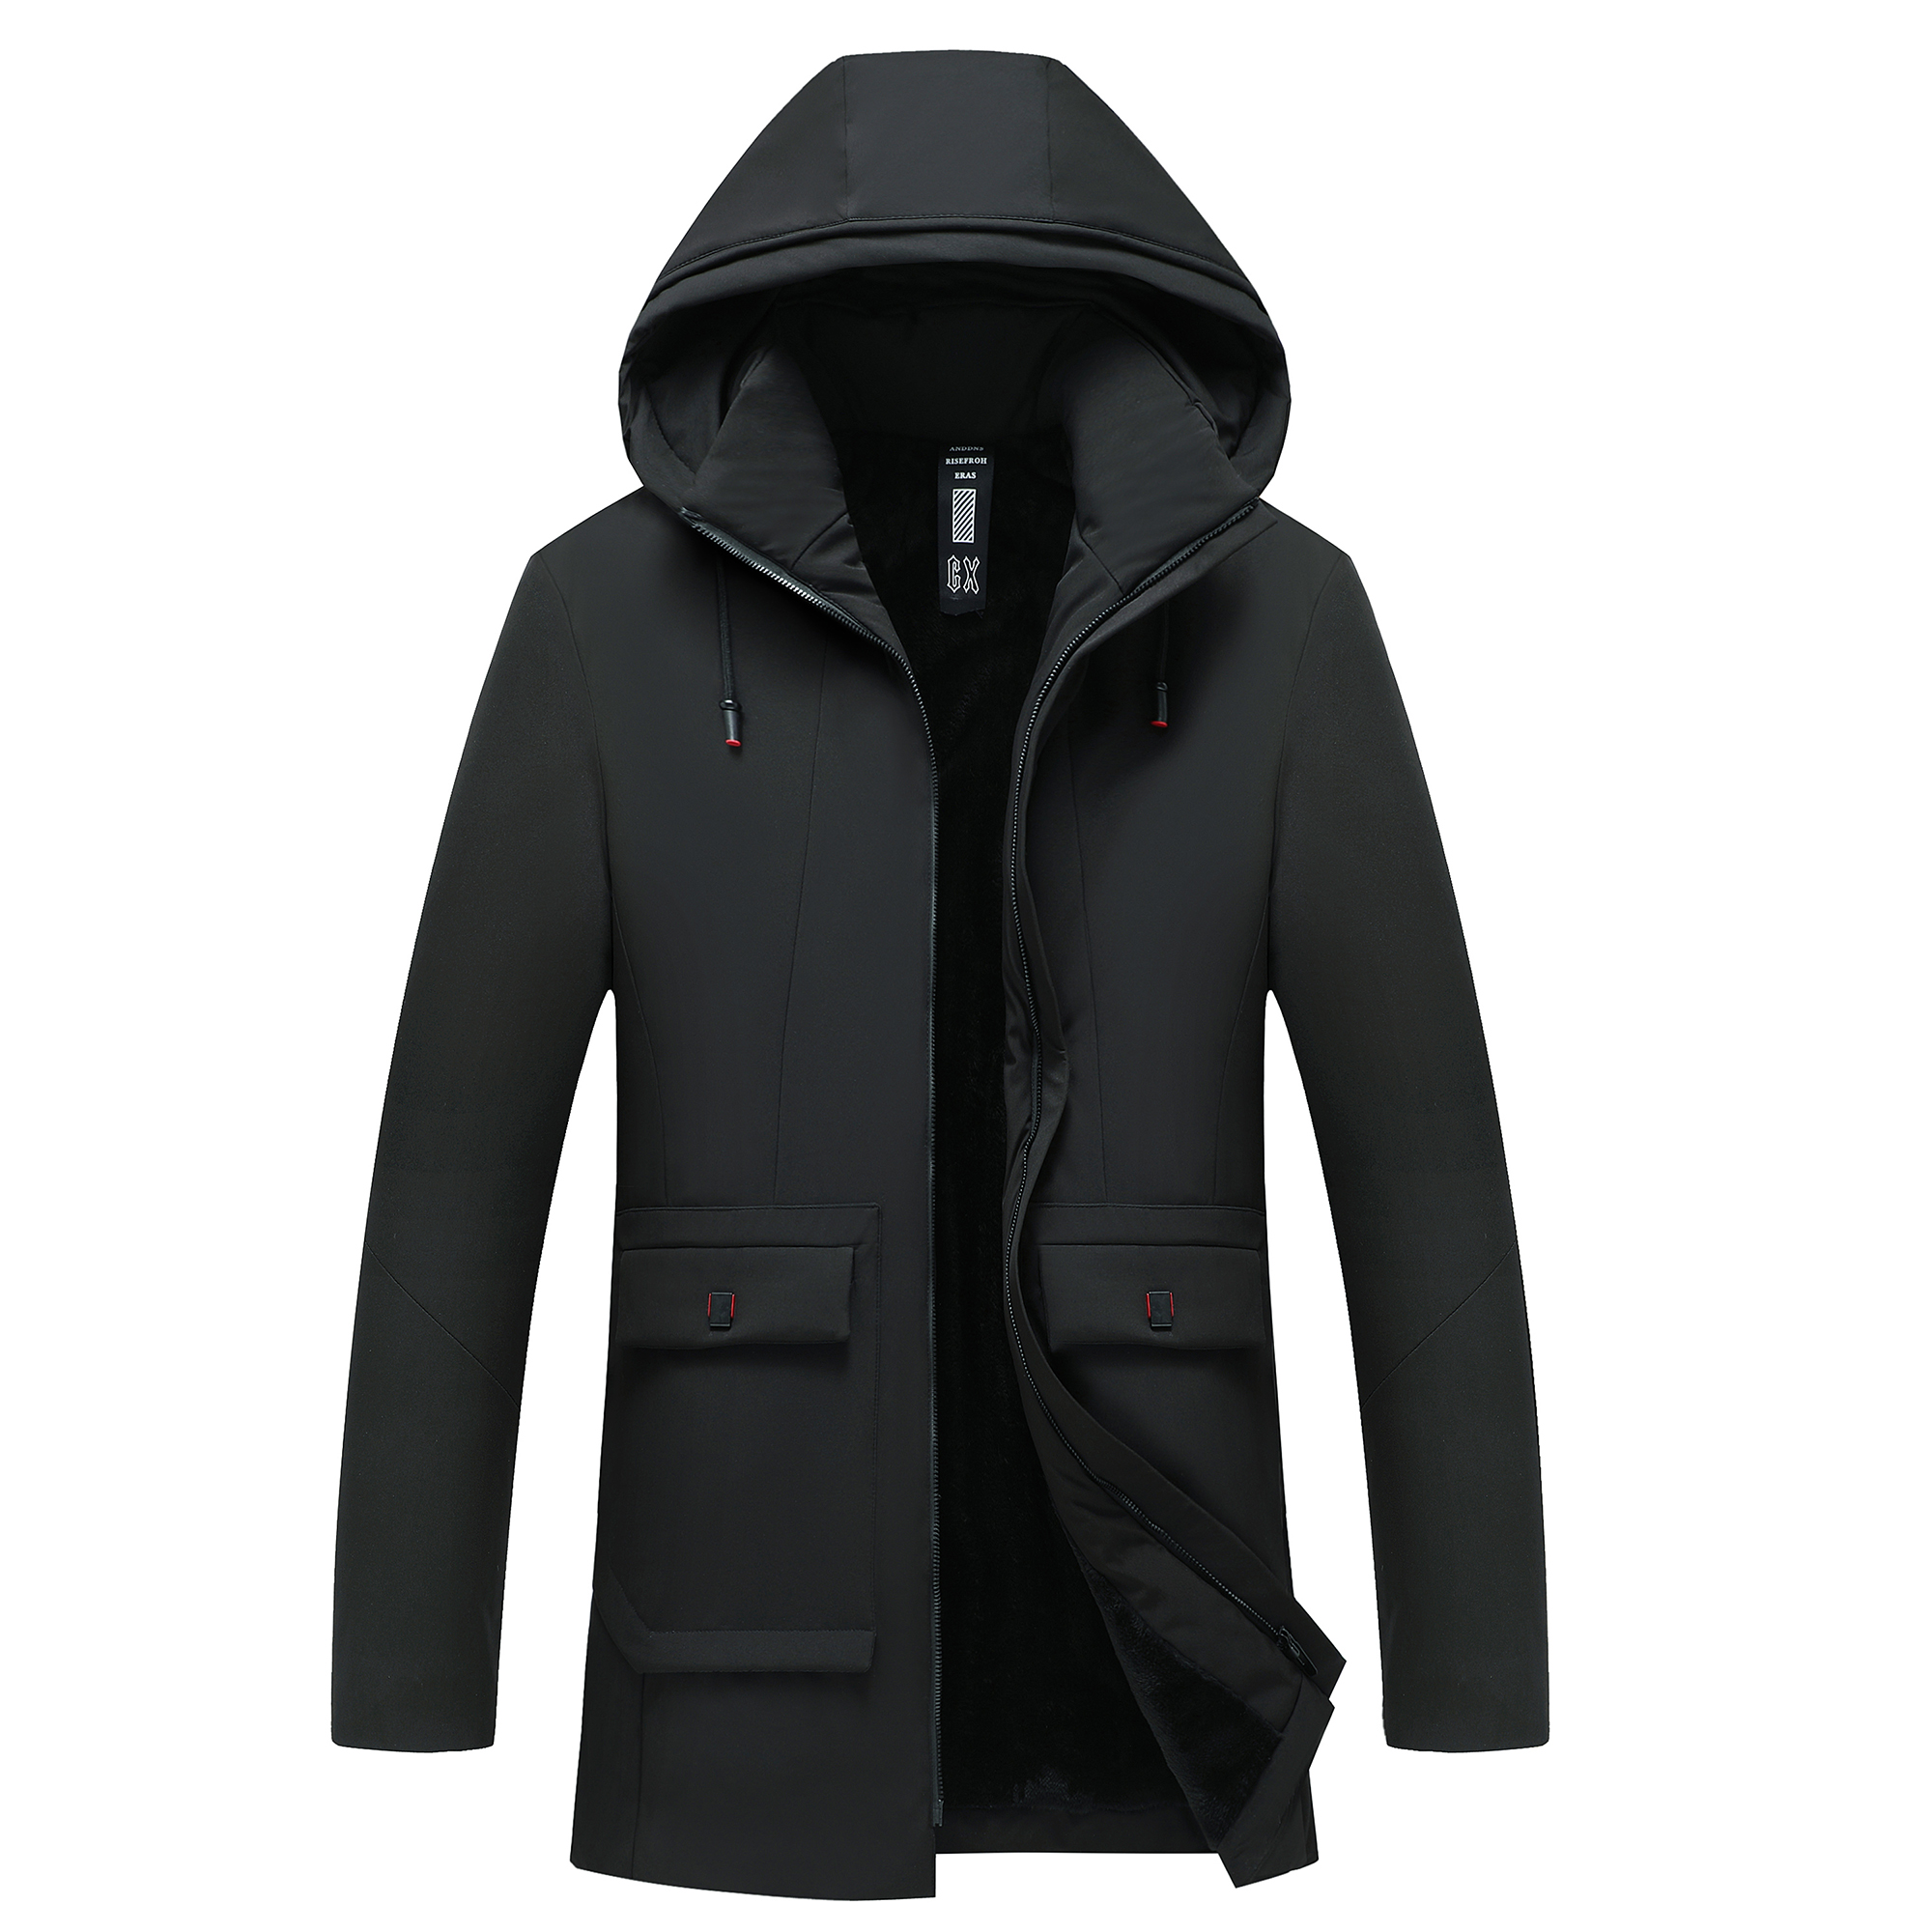 Winter Men Fleece Bomber Jacket  Brand Hooded Long Top High Quality Male Coat Casual Streetwear Father's Gift Size XL-5XL;YA509